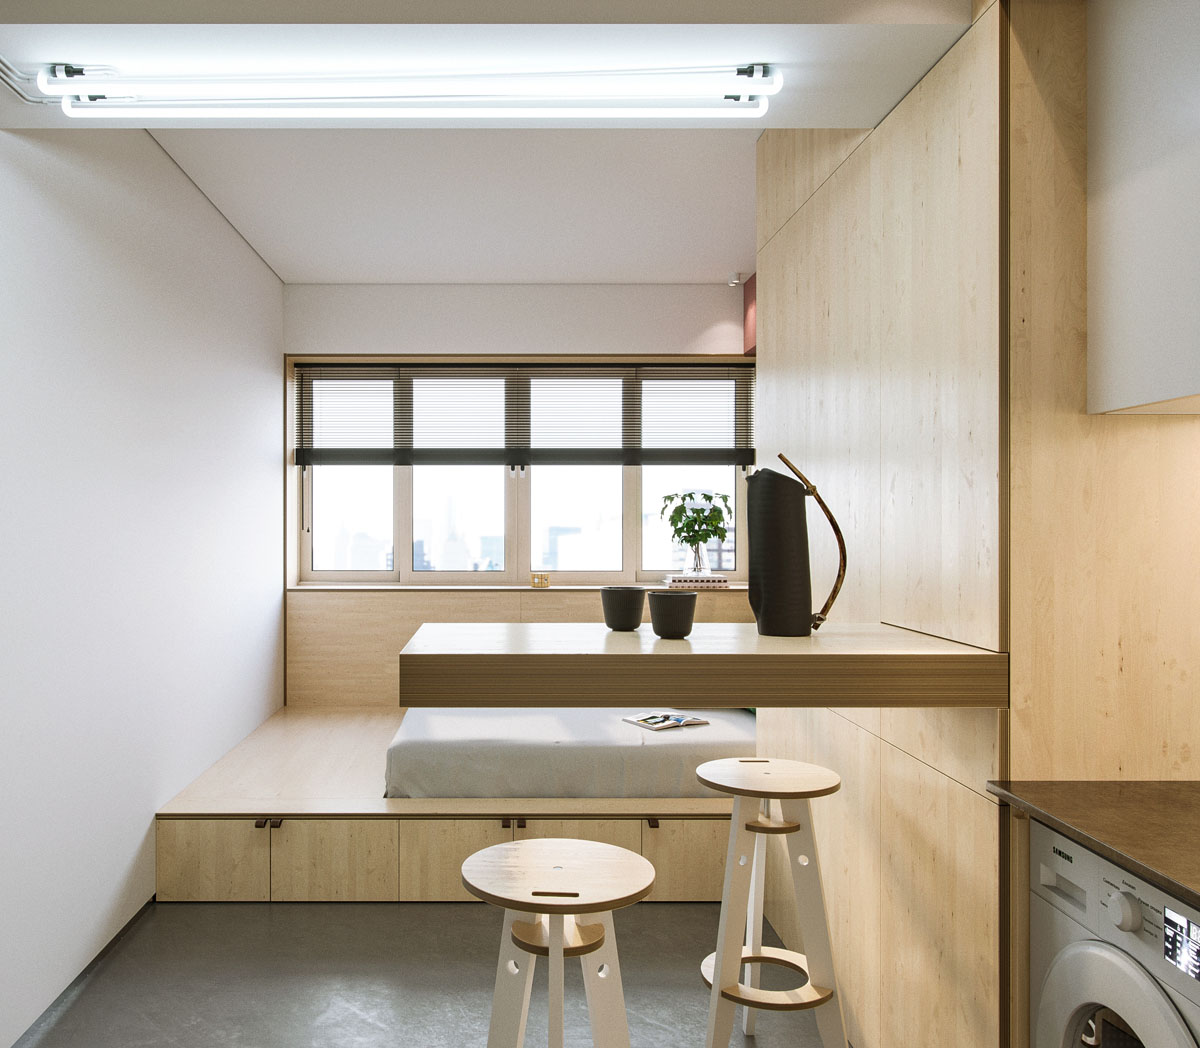 Super Compact Spaces: A Minimalist Studio Apartment Under